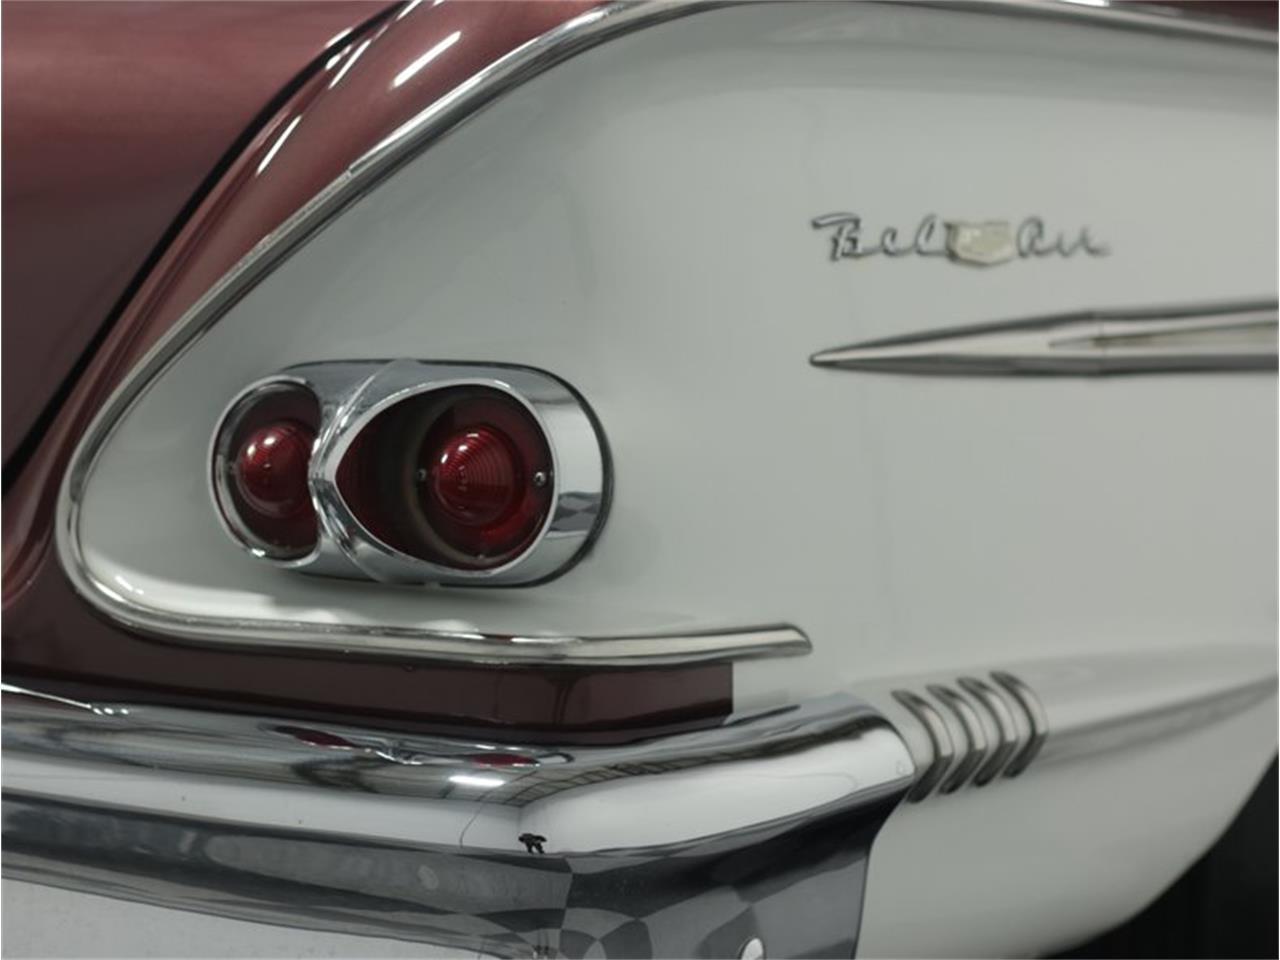 Large Picture of Classic '58 Chevrolet Bel Air located in Georgia - $19,995.00 - GQ7T